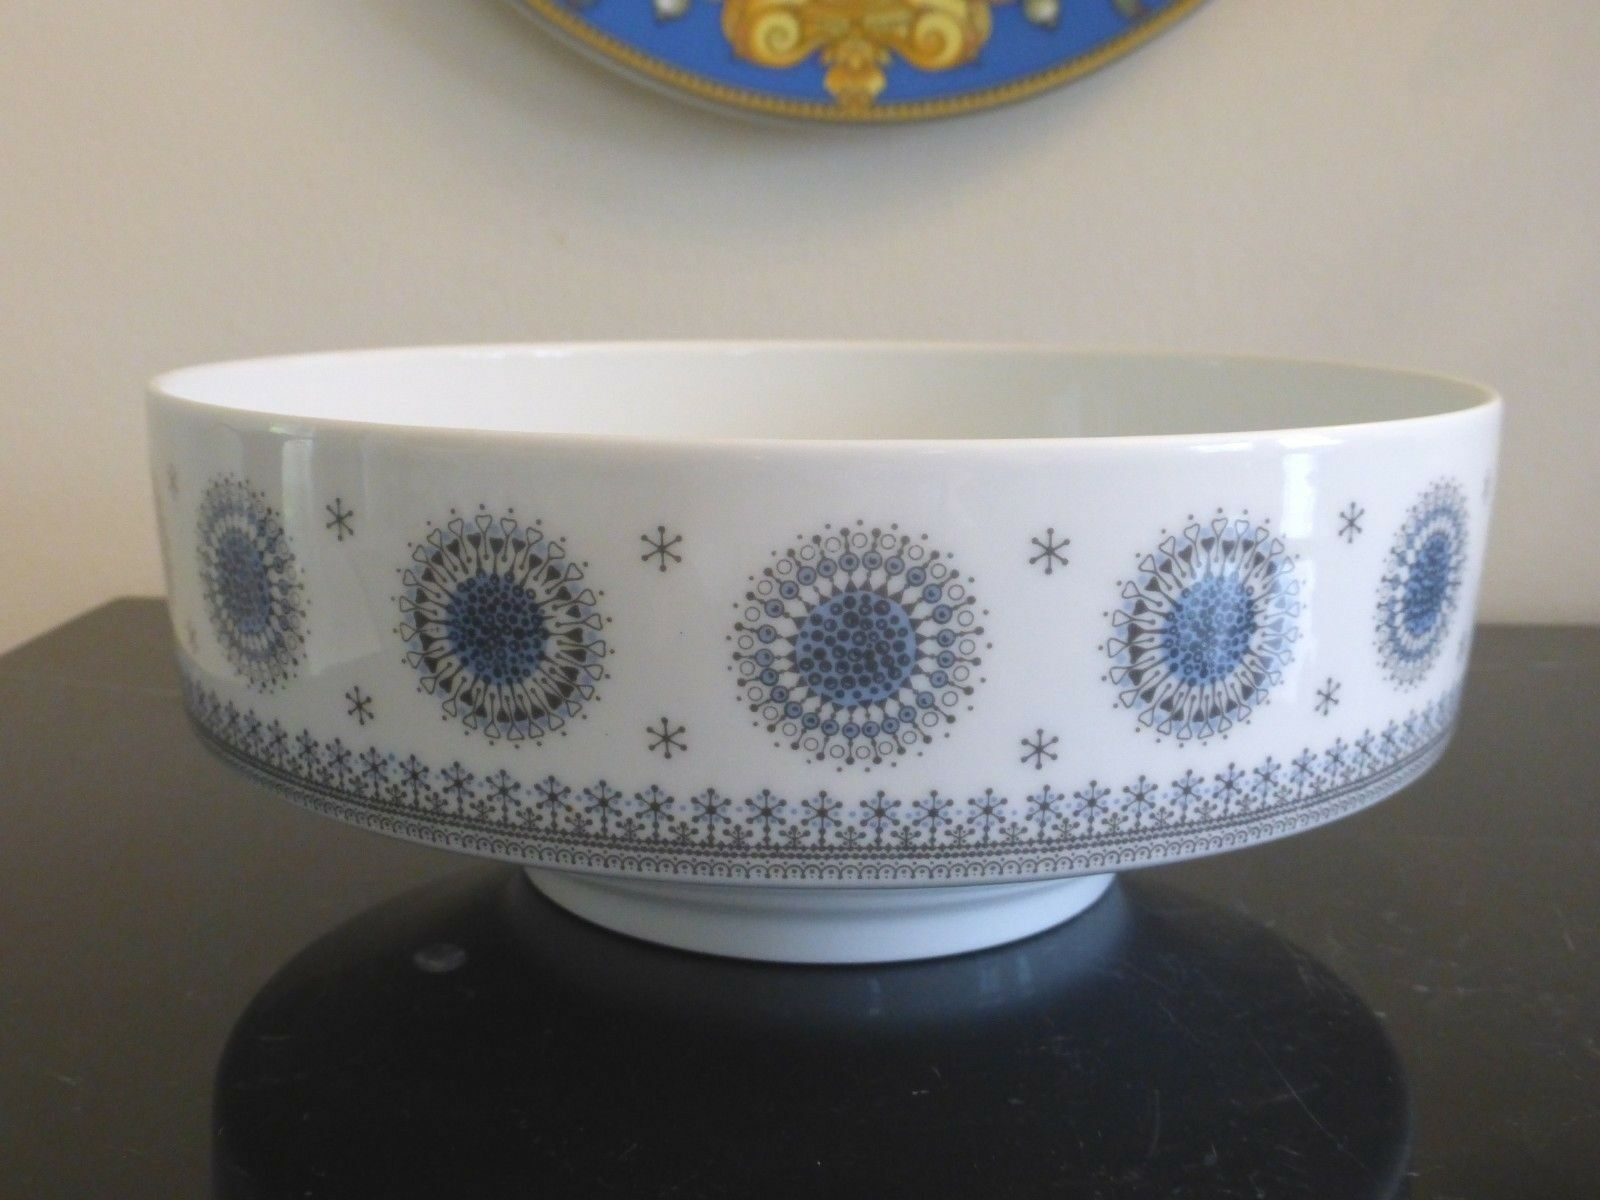 "Primary image for ROSENTHAL TAPIO WIRKKALA ICE BLOSSOM 1960S ROUND SERVING BOWL 8.5"" WIDE"